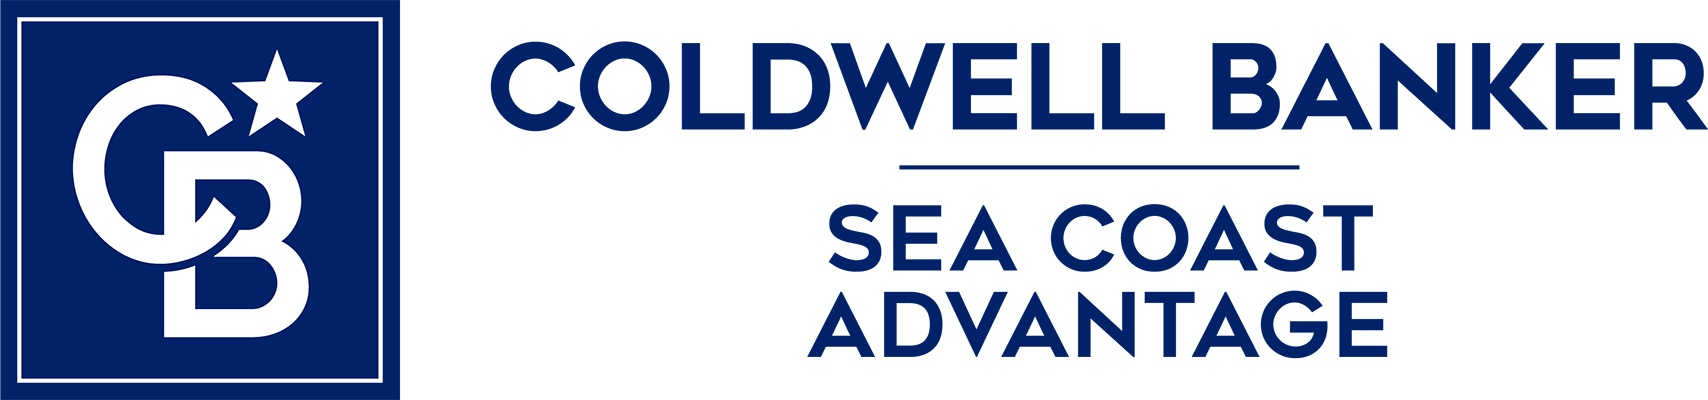 Brad Norris - Coldwell Banker Sea Coast Advantage Realty